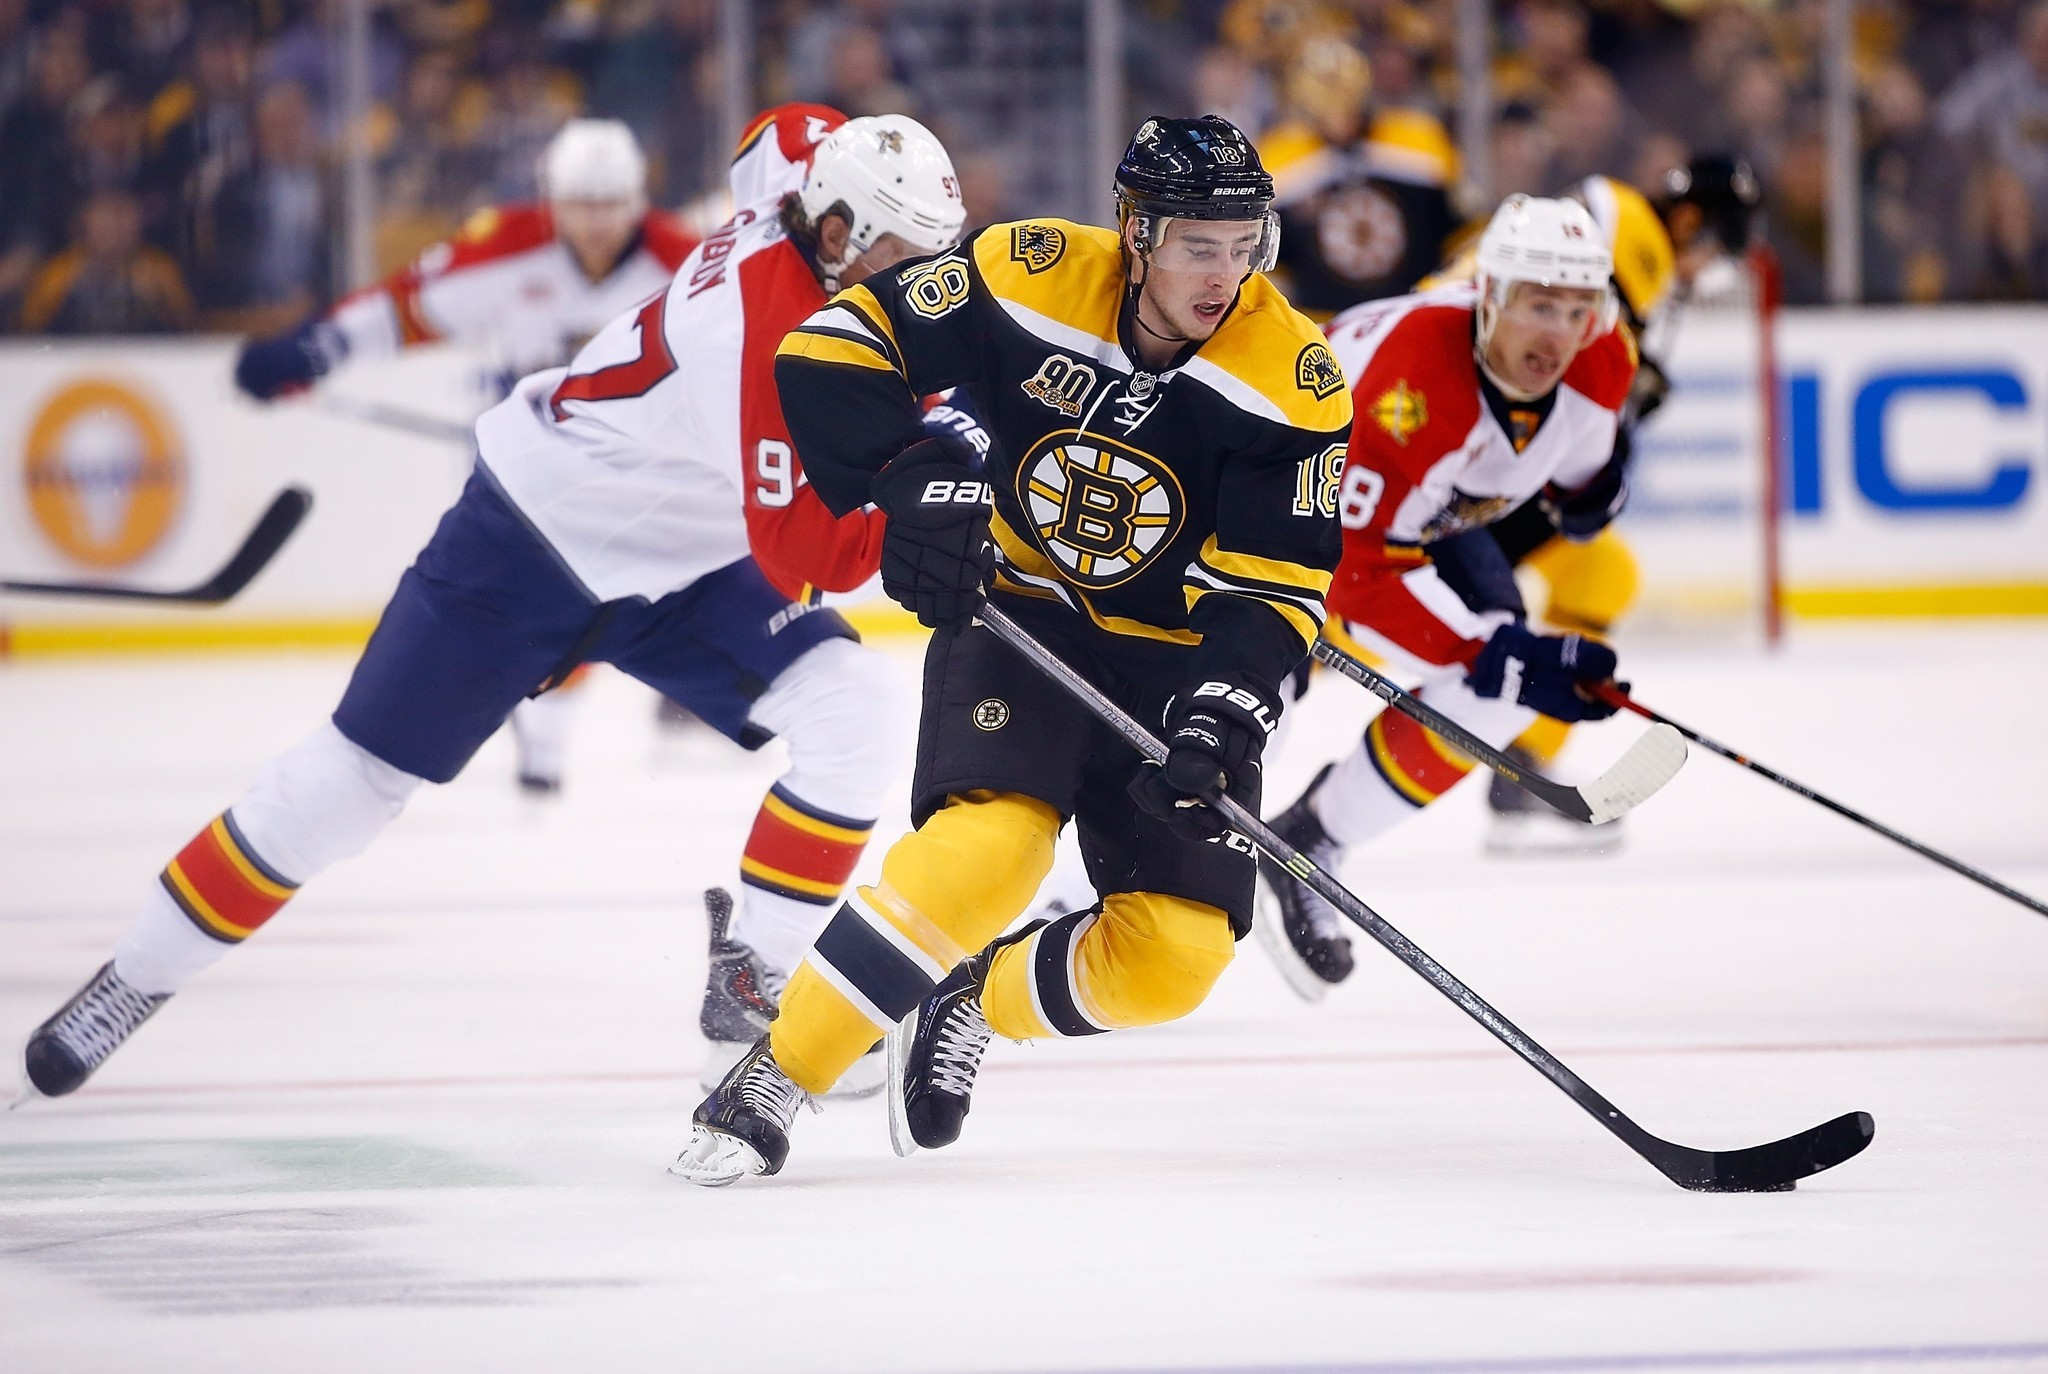 c15a28ae37a Florida panthers trade Jimmy Hayes for Bruins Reilly Mmith - Sun Sentinel